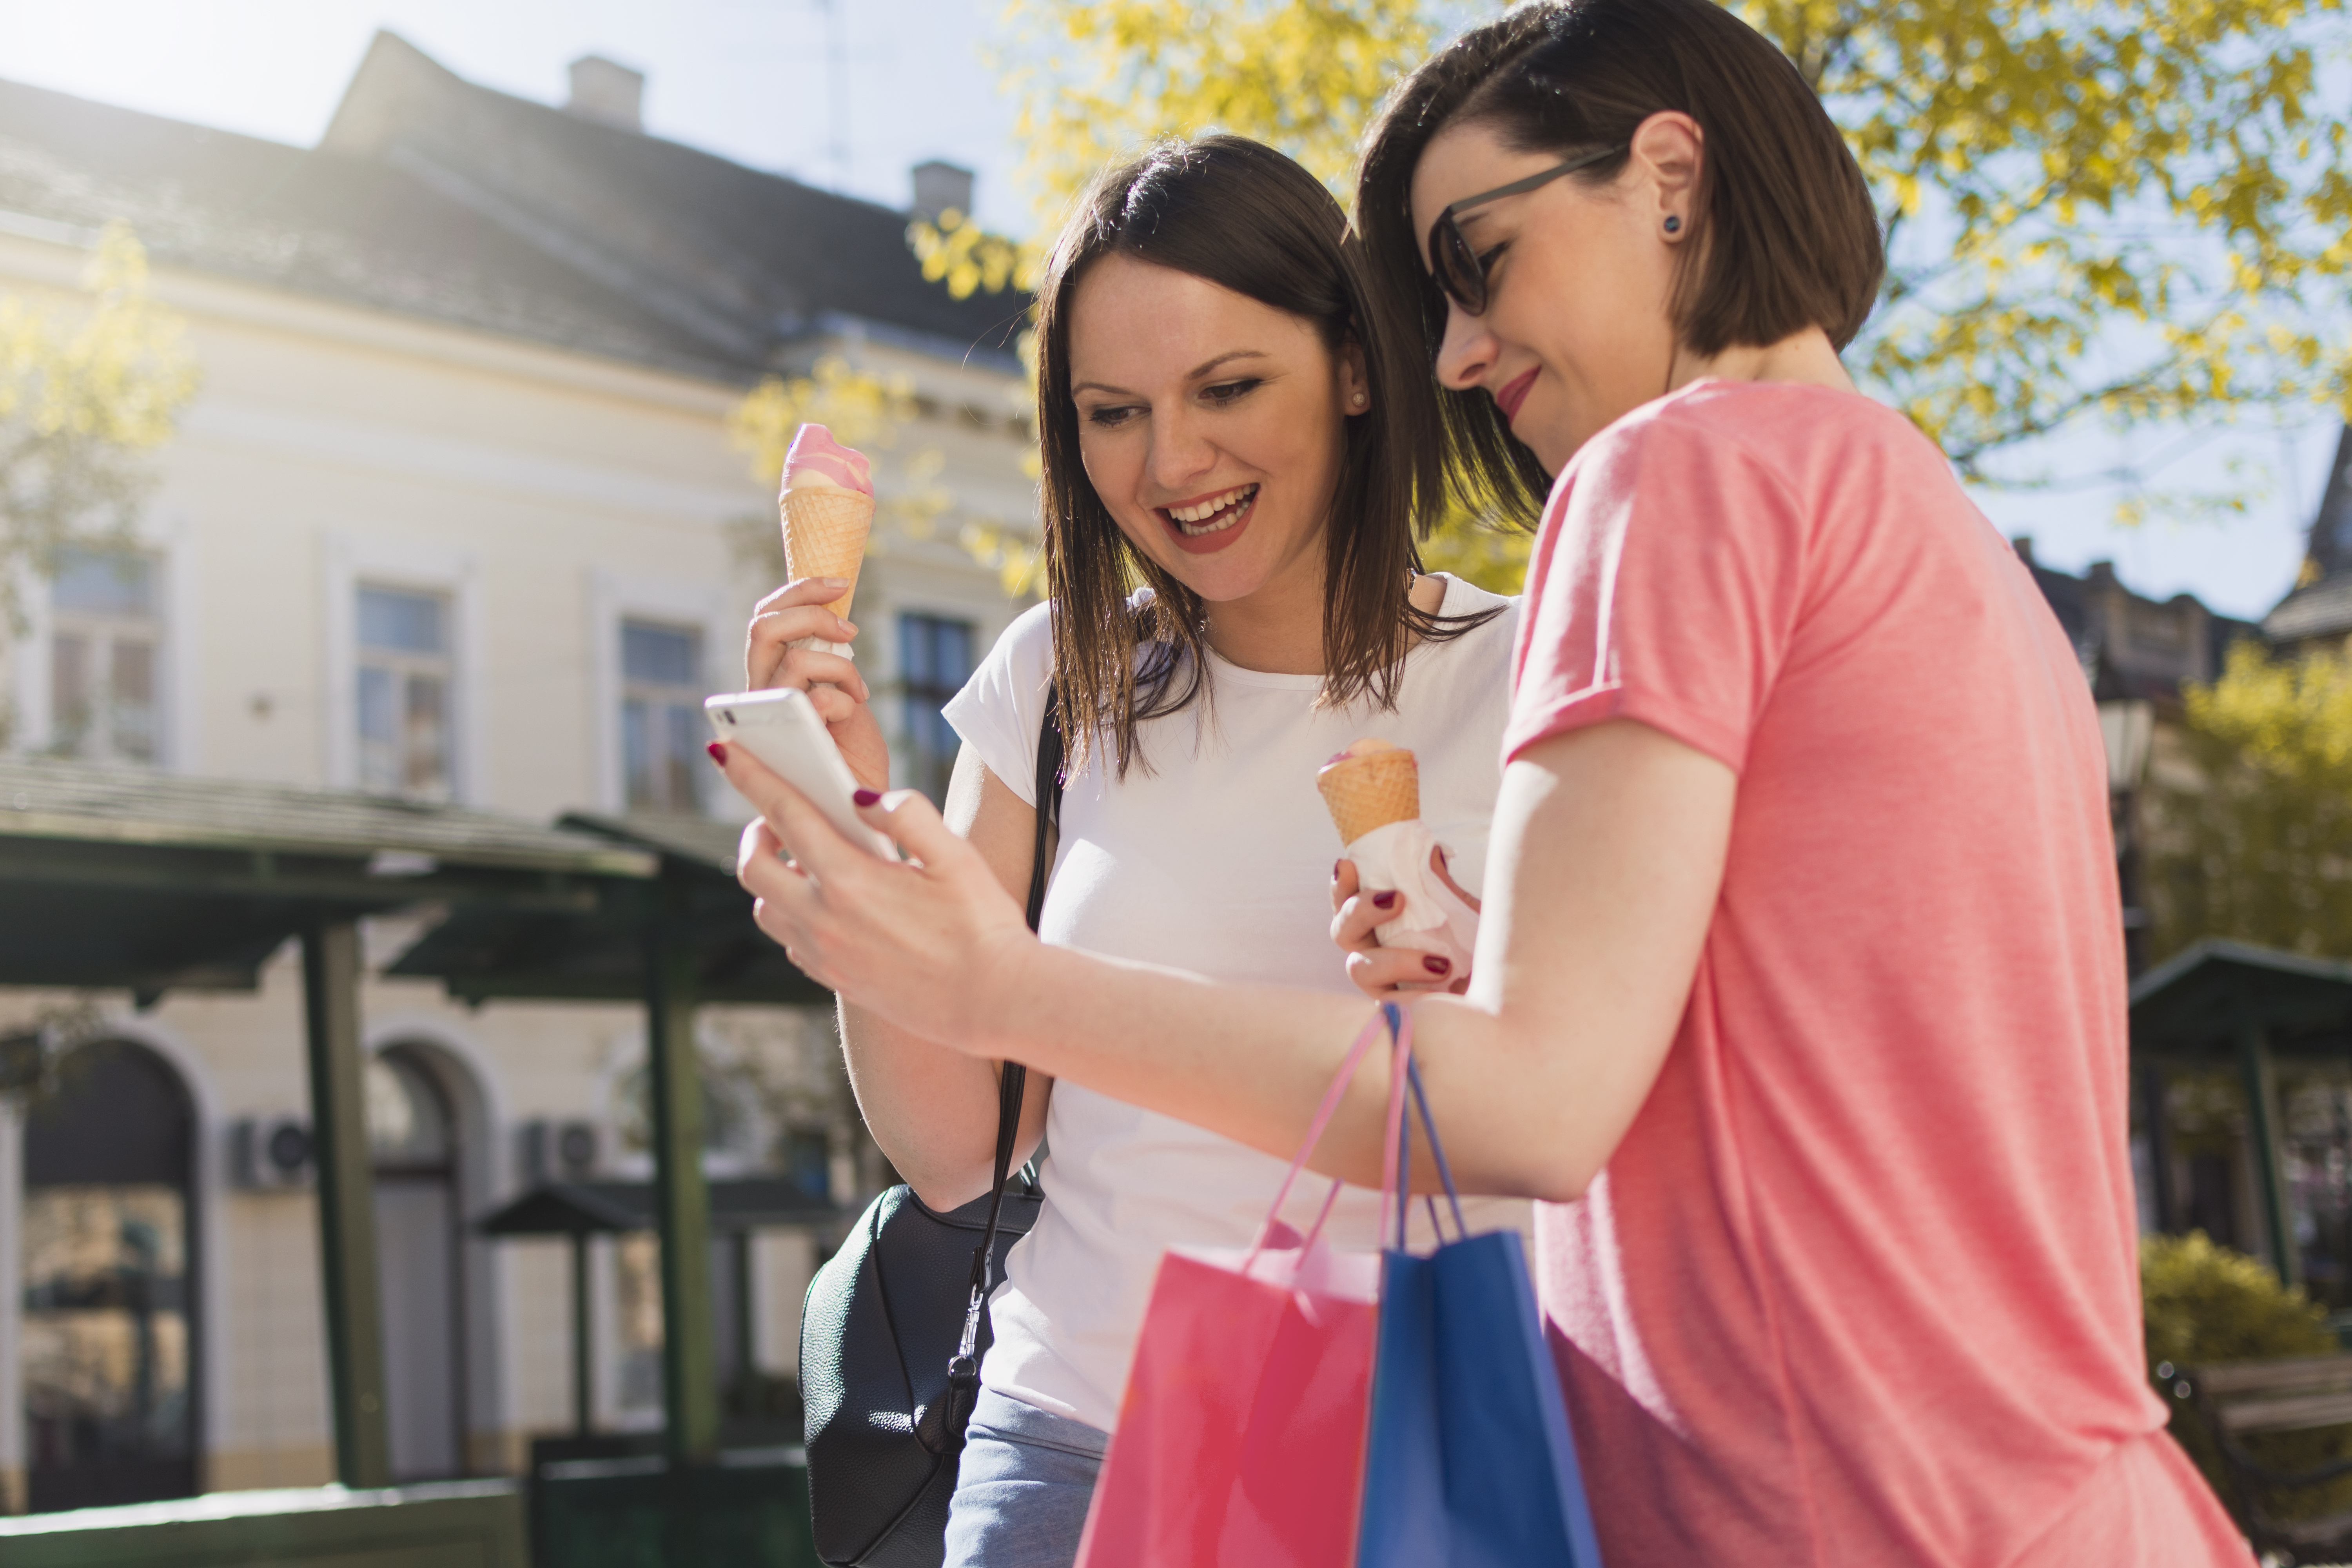 Two adult girls on mobile phone enjoy ice cream and use a cell phone while walking in city street